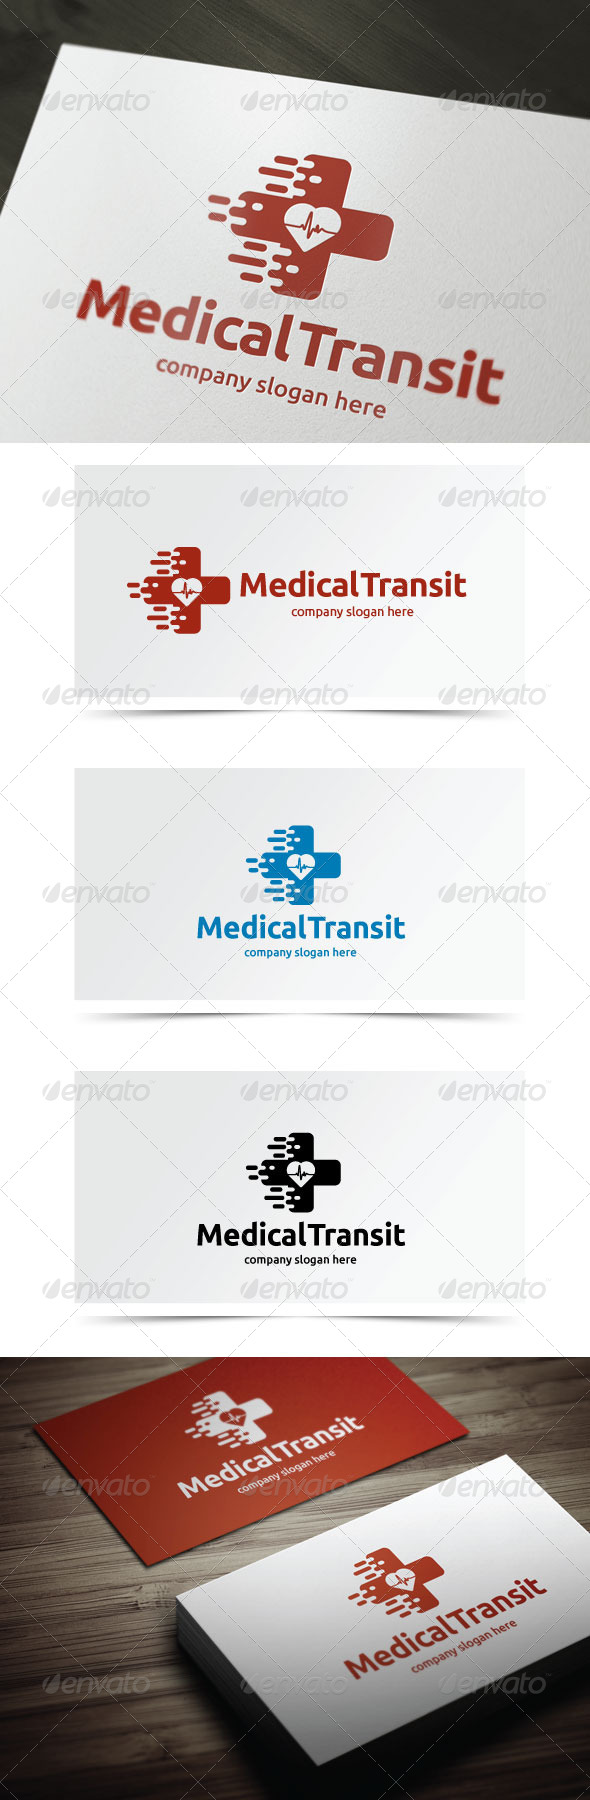 GraphicRiver Medical Transit 5638850